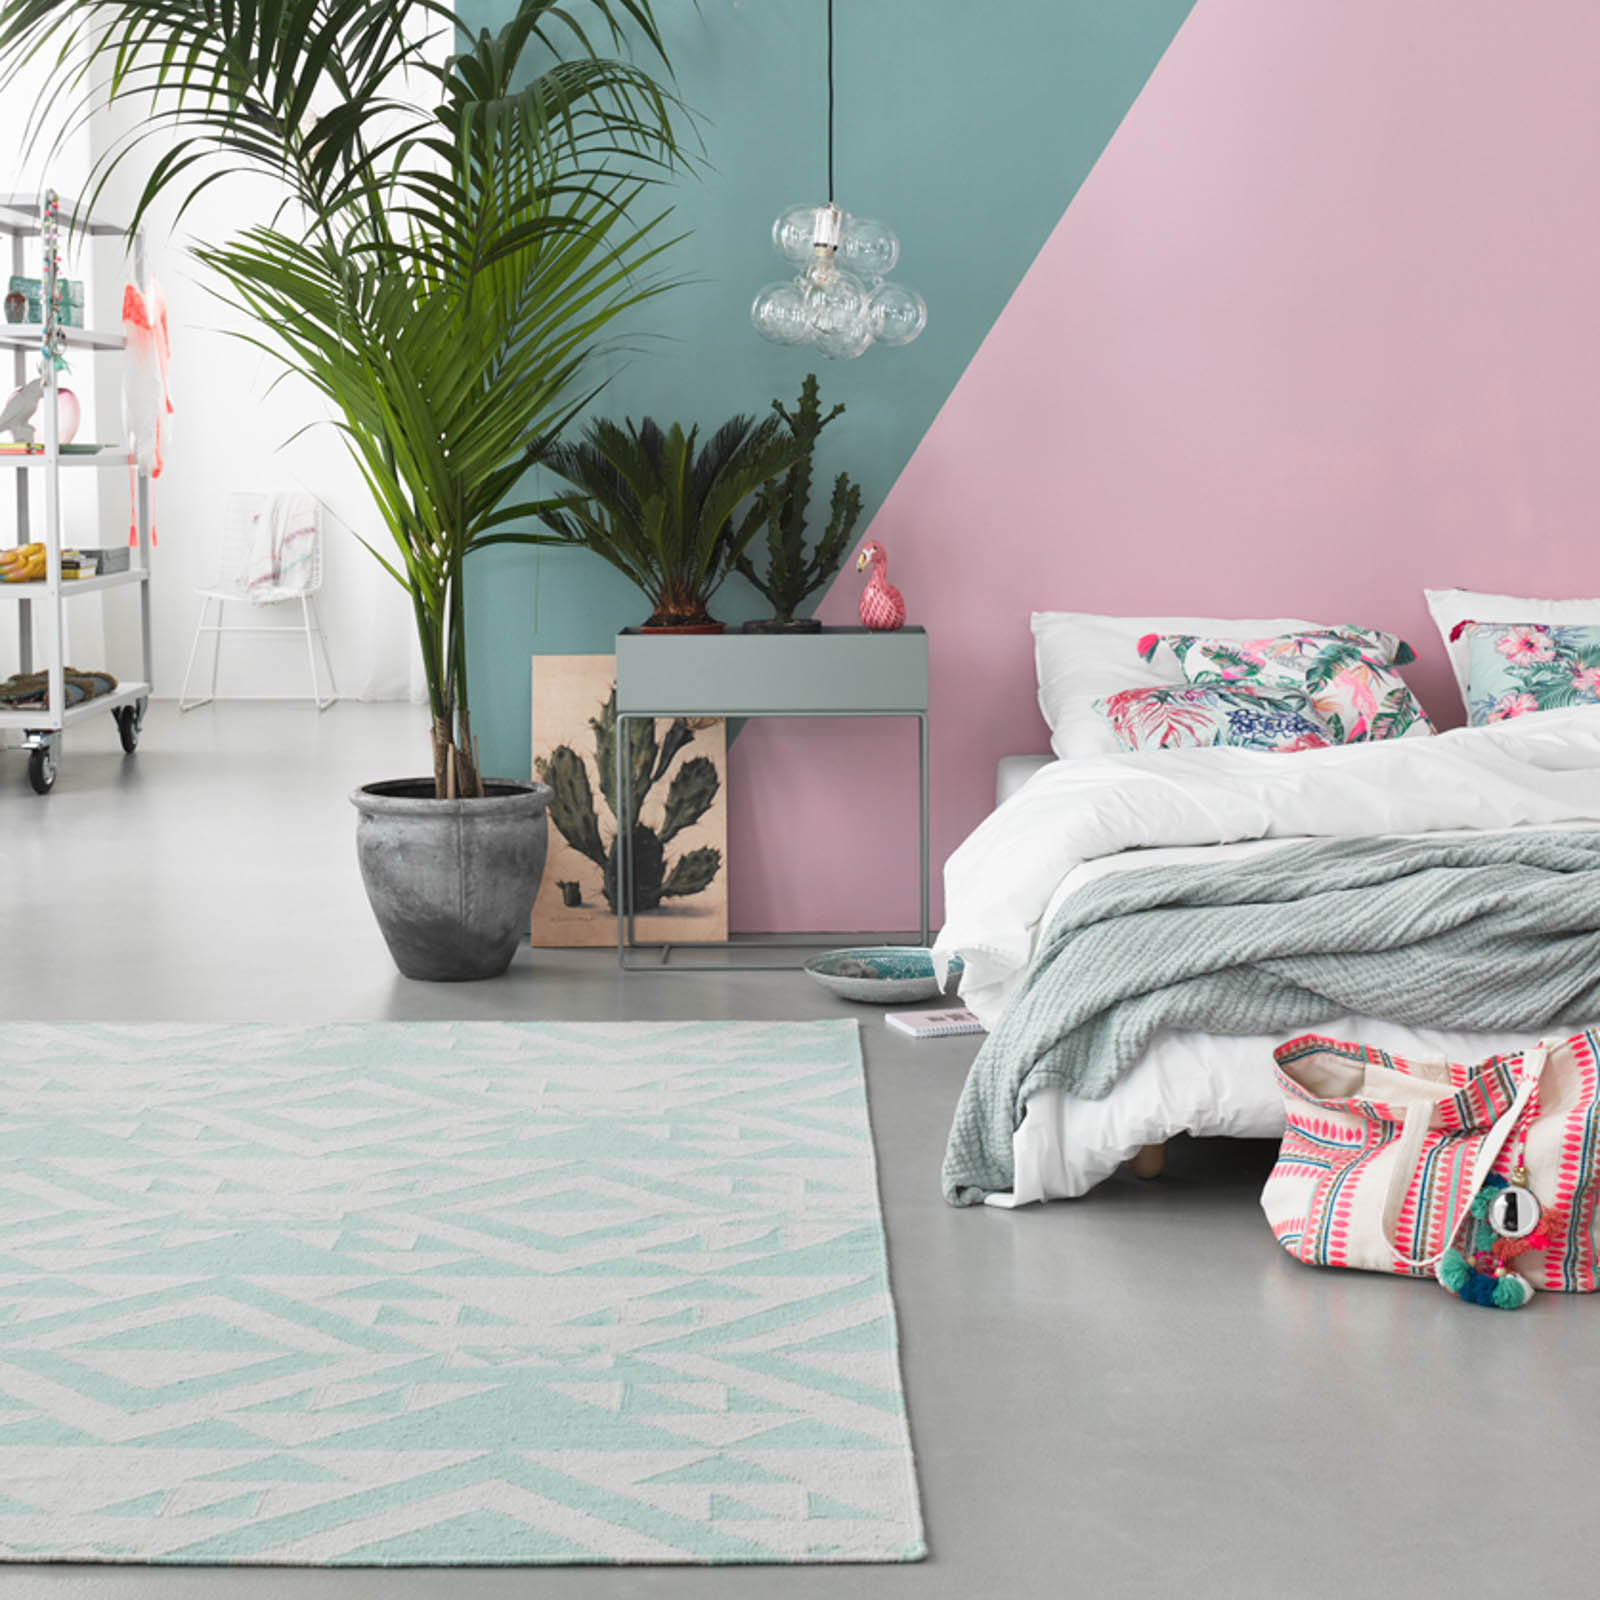 Light Mellow rugs 004 10 by Accessorize Home